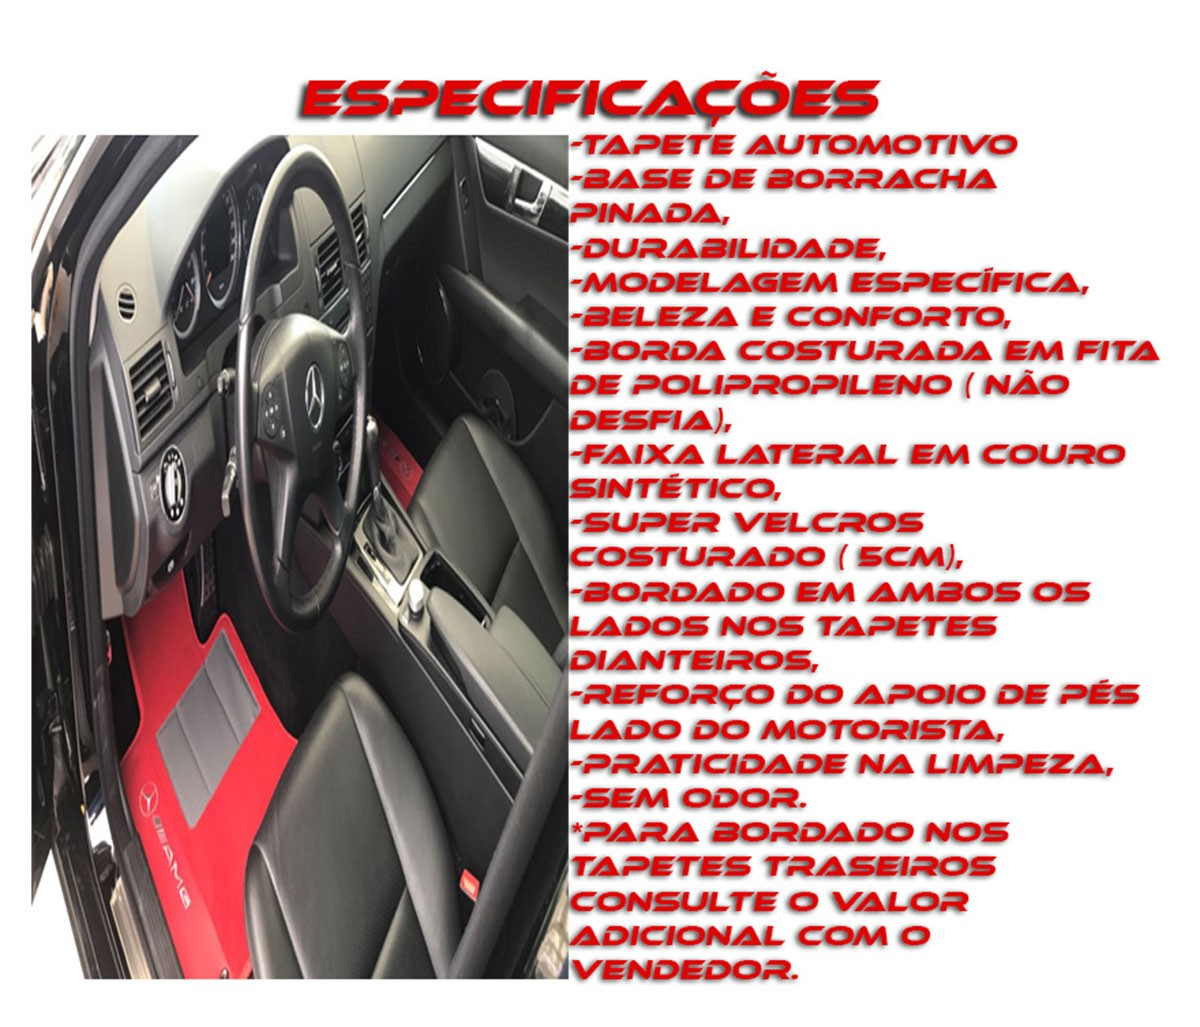 Tapete Nissan Kicks Carpete Luxo Base Borracha Pinada Hitto